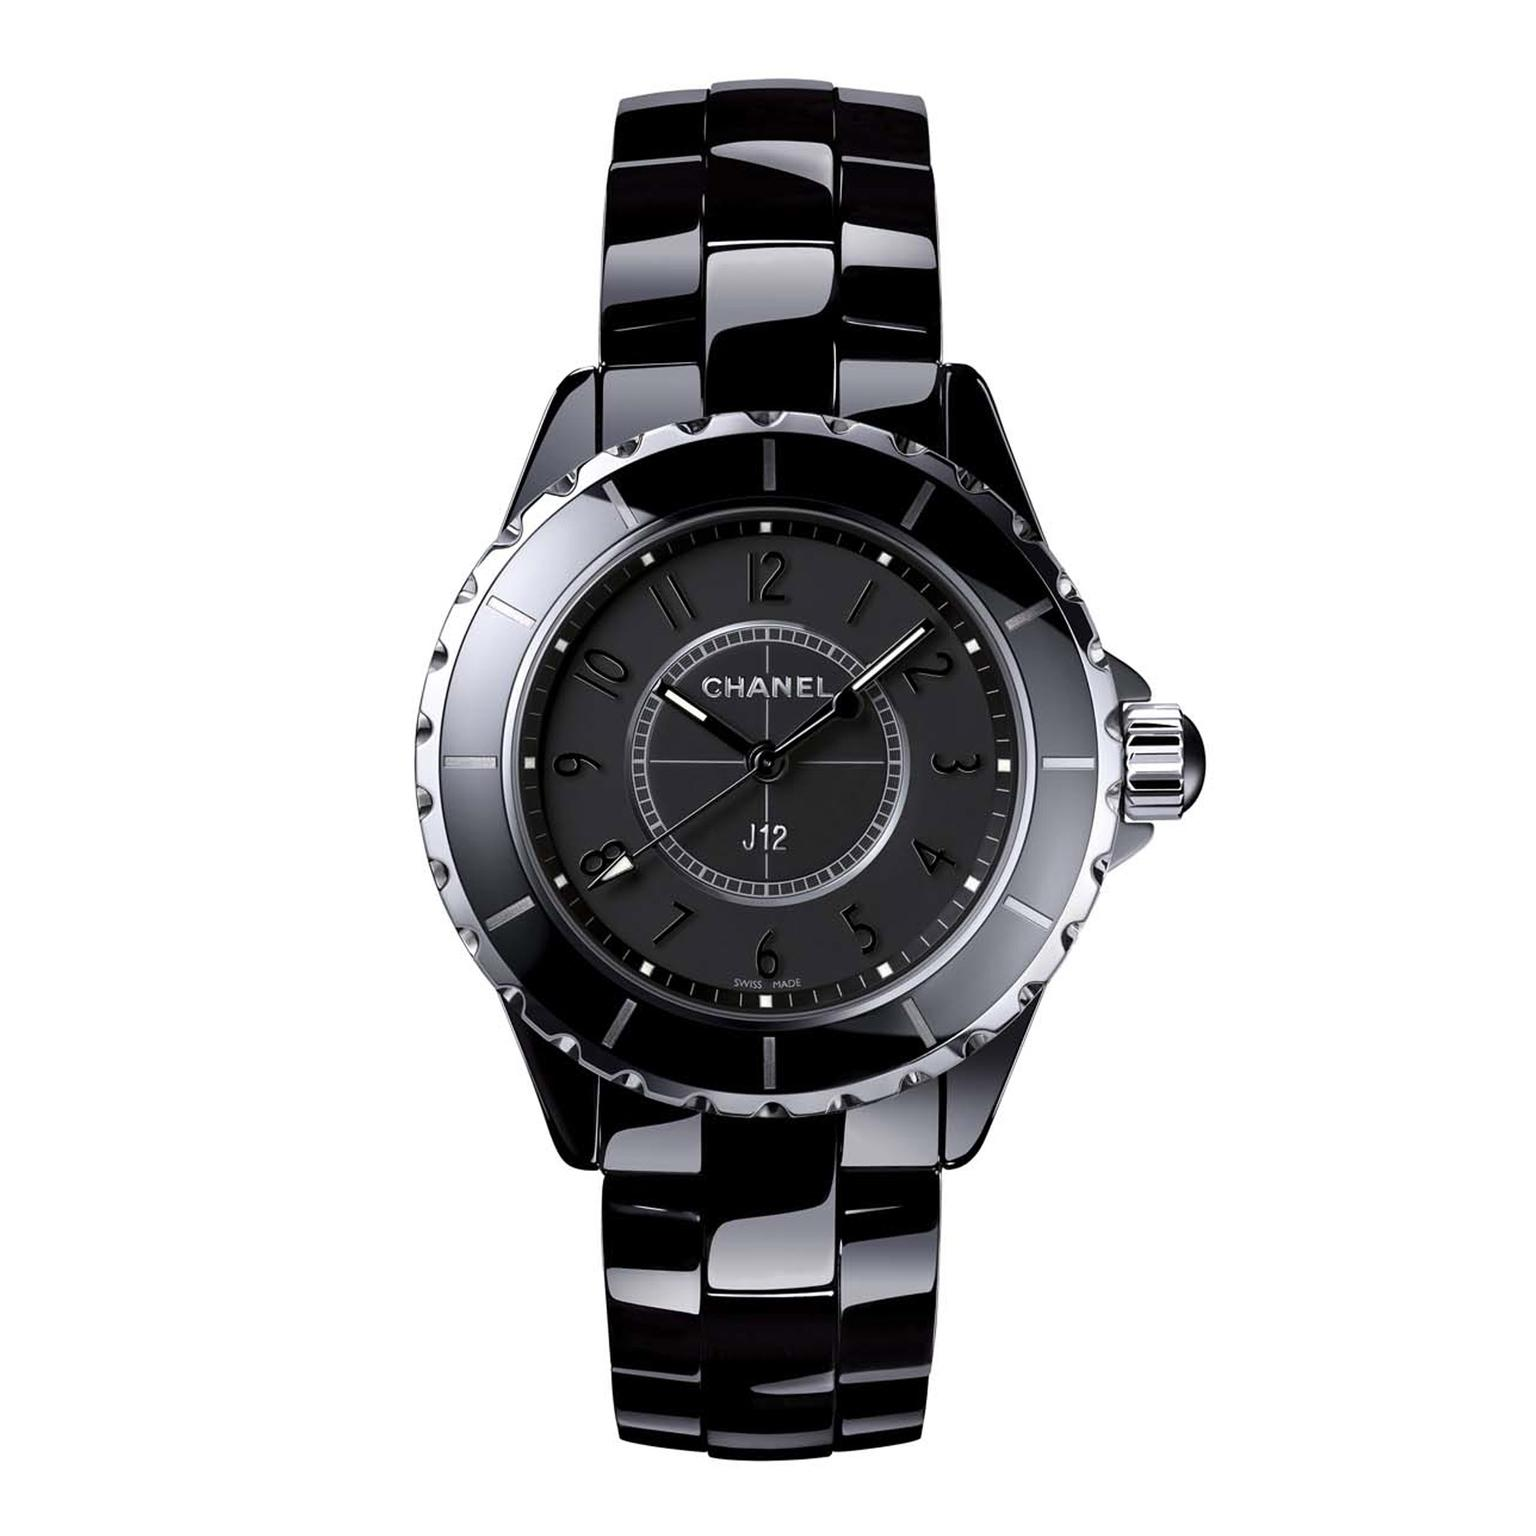 Chanel-J12-Black-Intense-zoom